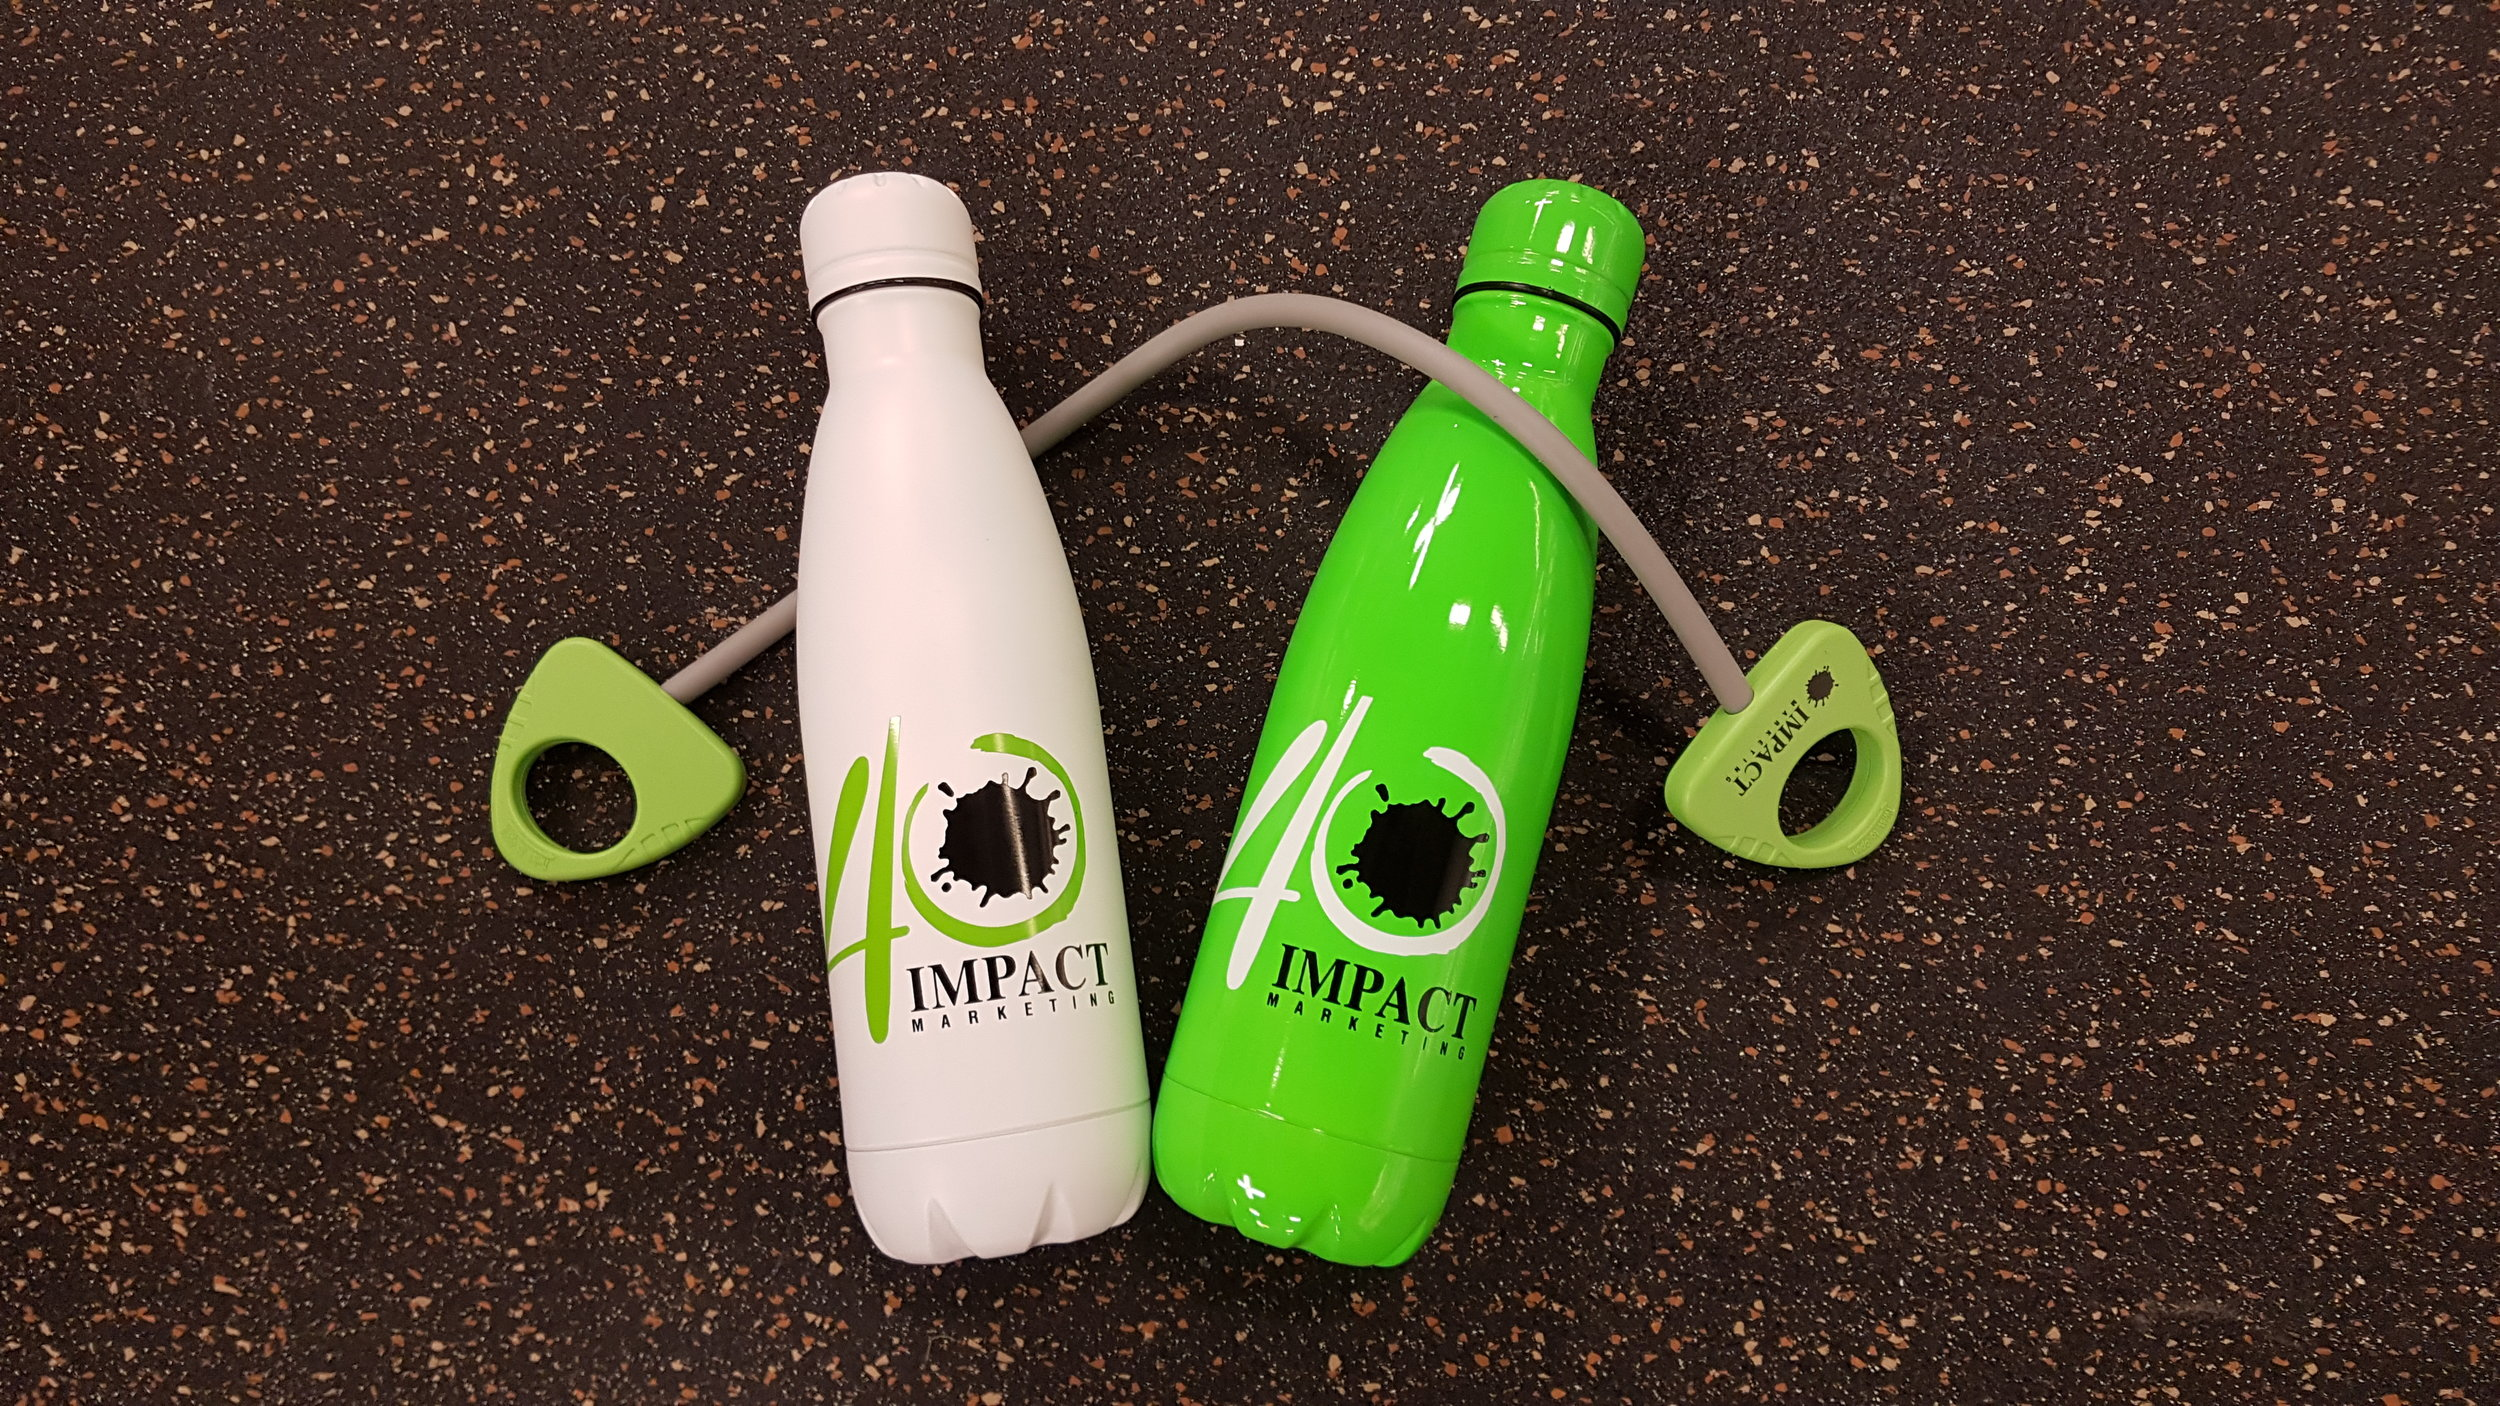 best bottles ever! - Impact Marketing did an incredible job getting our bottles to us in a timely manner for our event! Fast and affordable with friendly service! Thanks Impact Team!